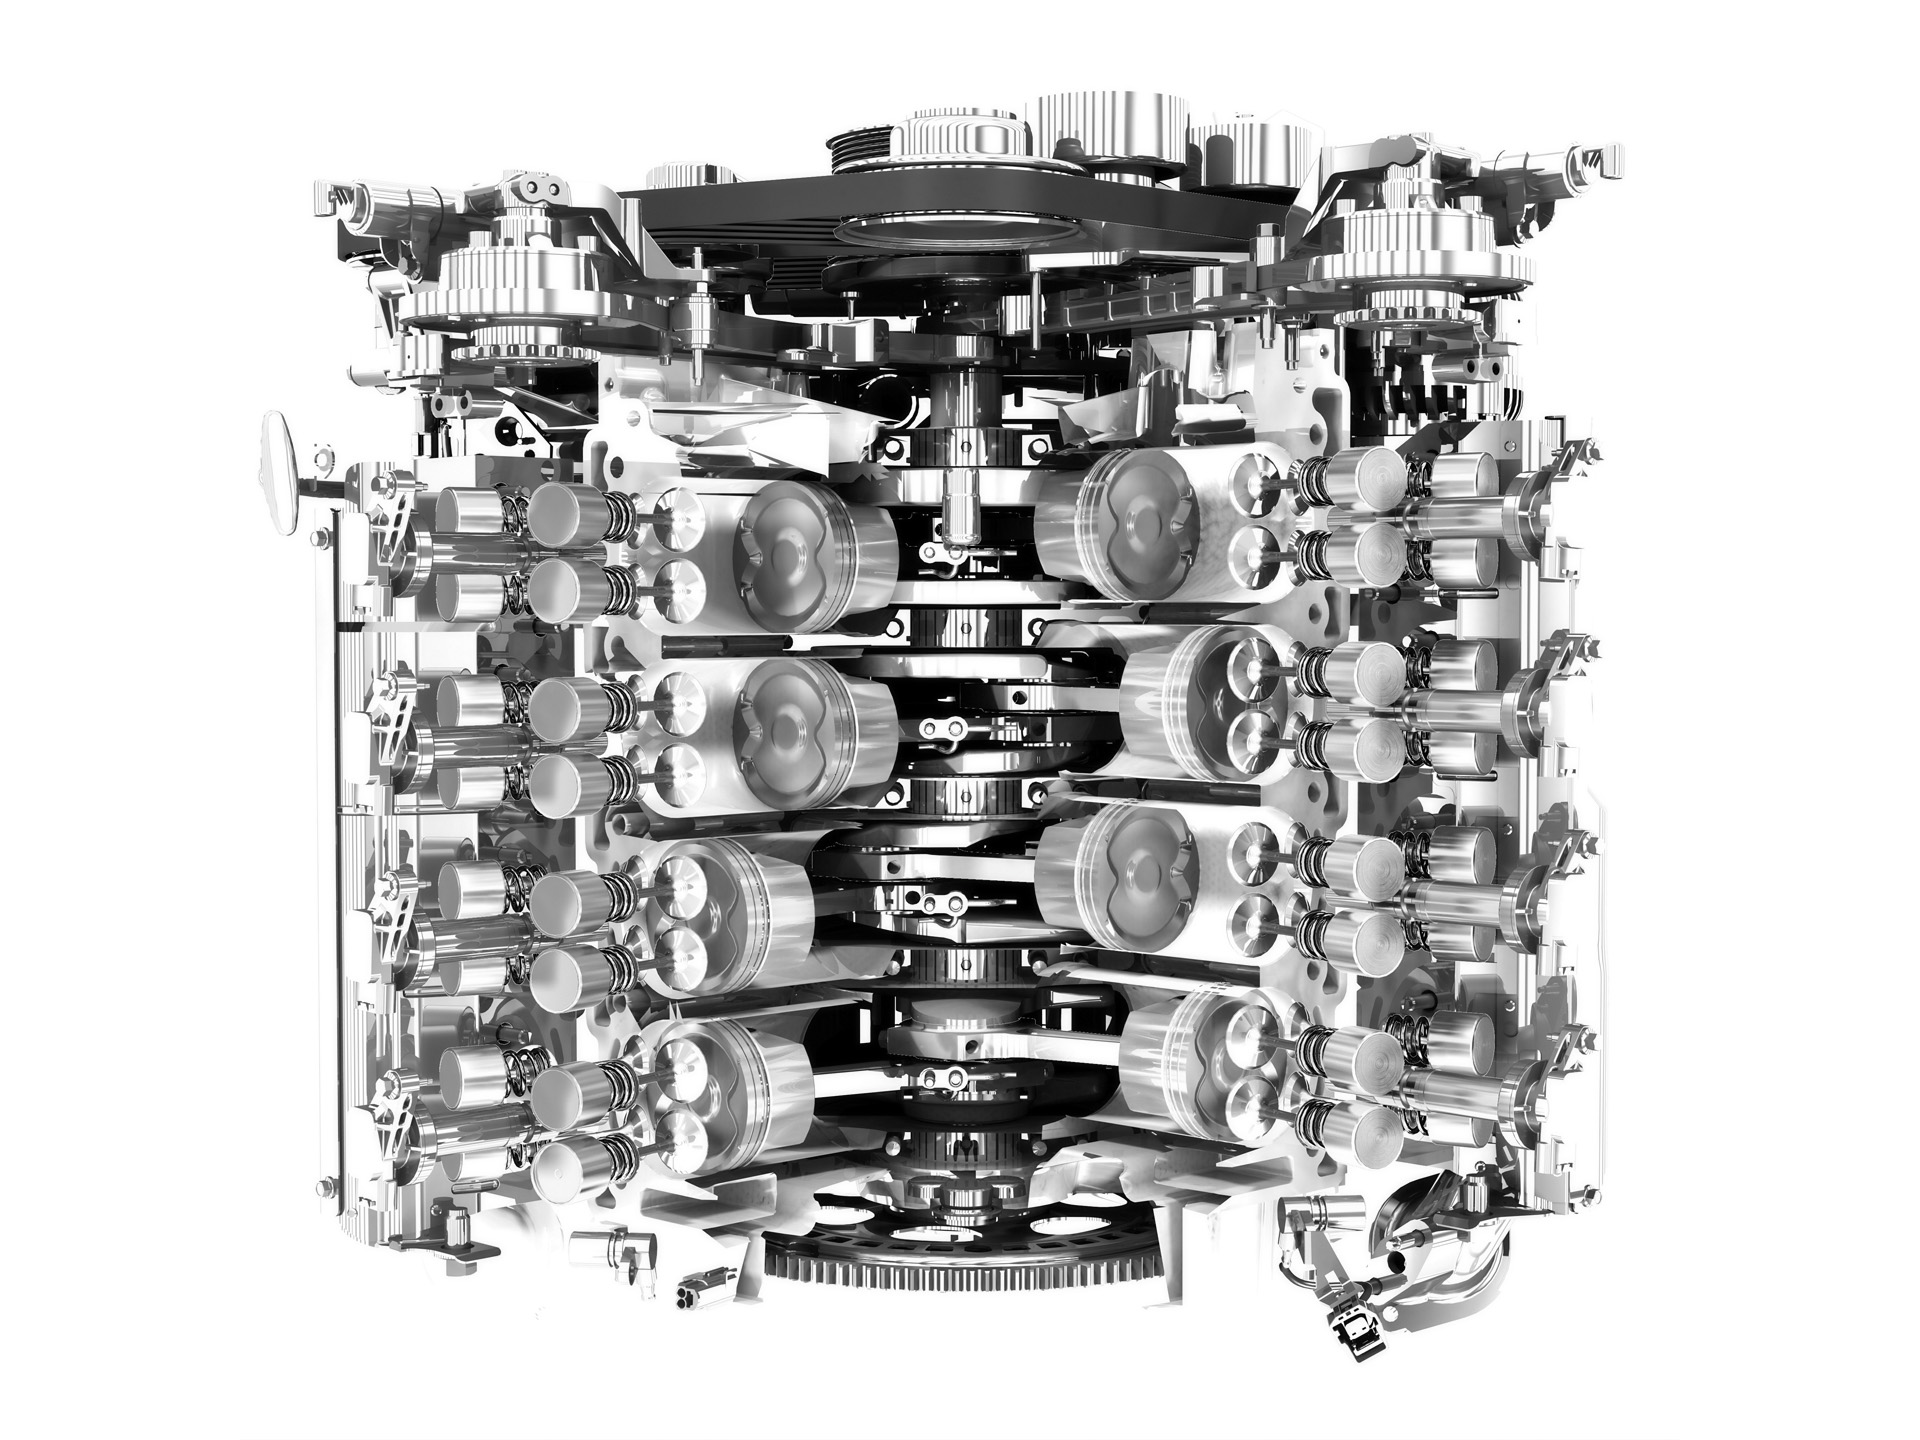 Sample P1854 Engine